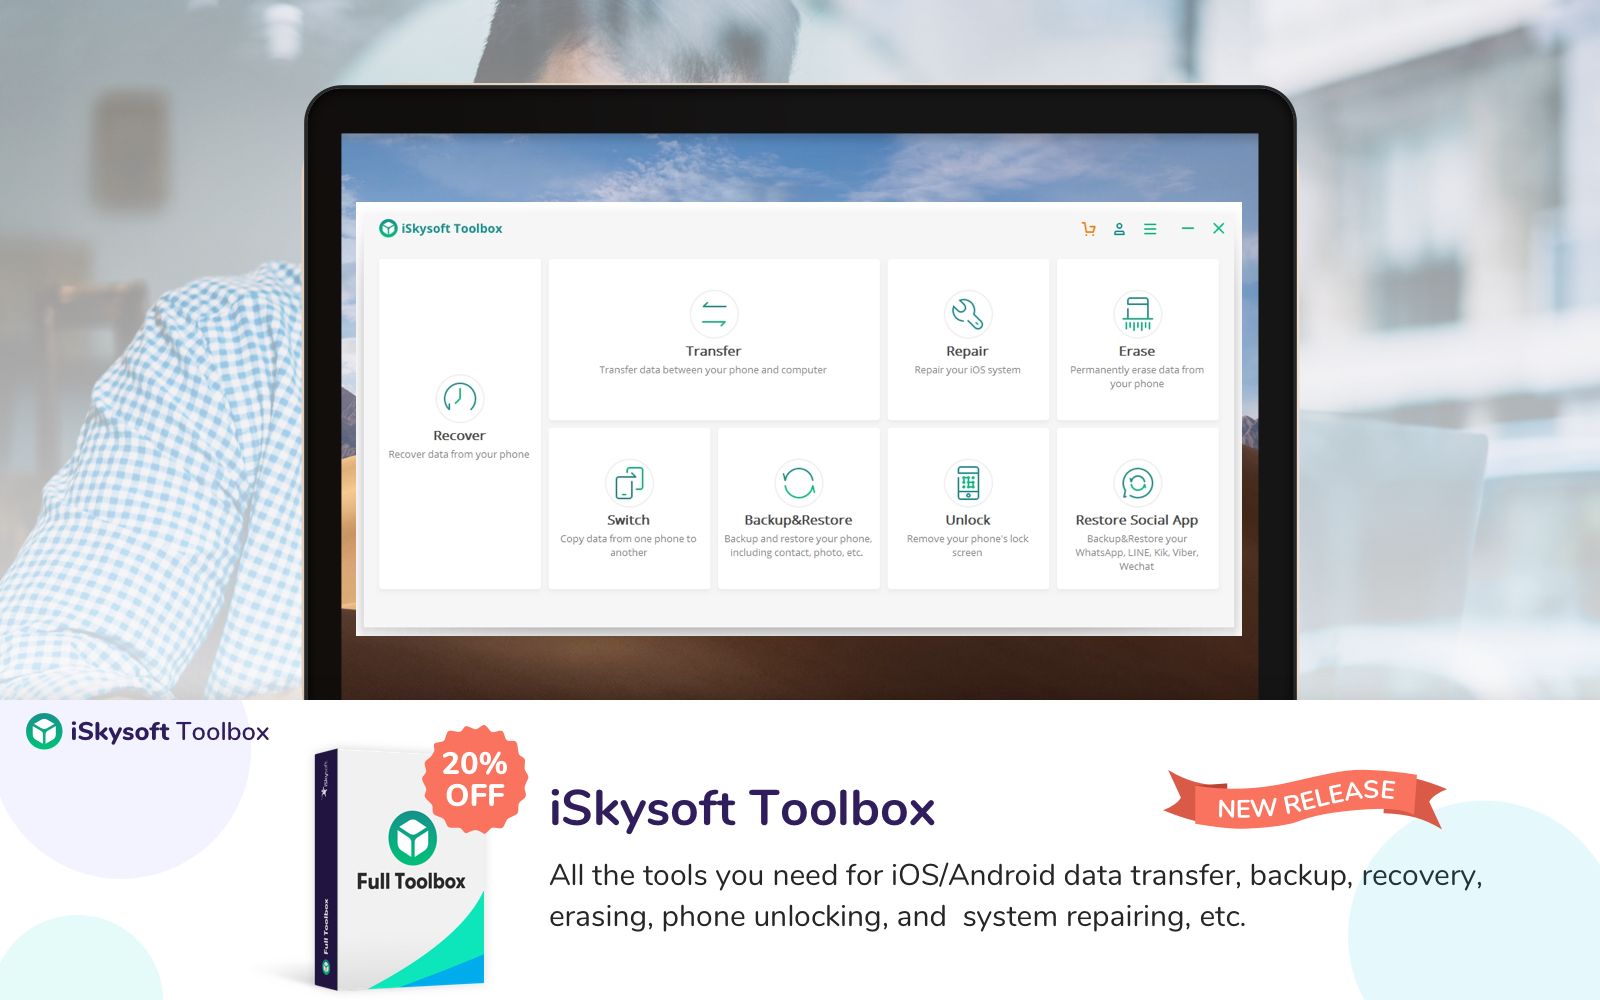 If you need to deal with data on iOS or Android devices, iSkysoft Toolbox can help.